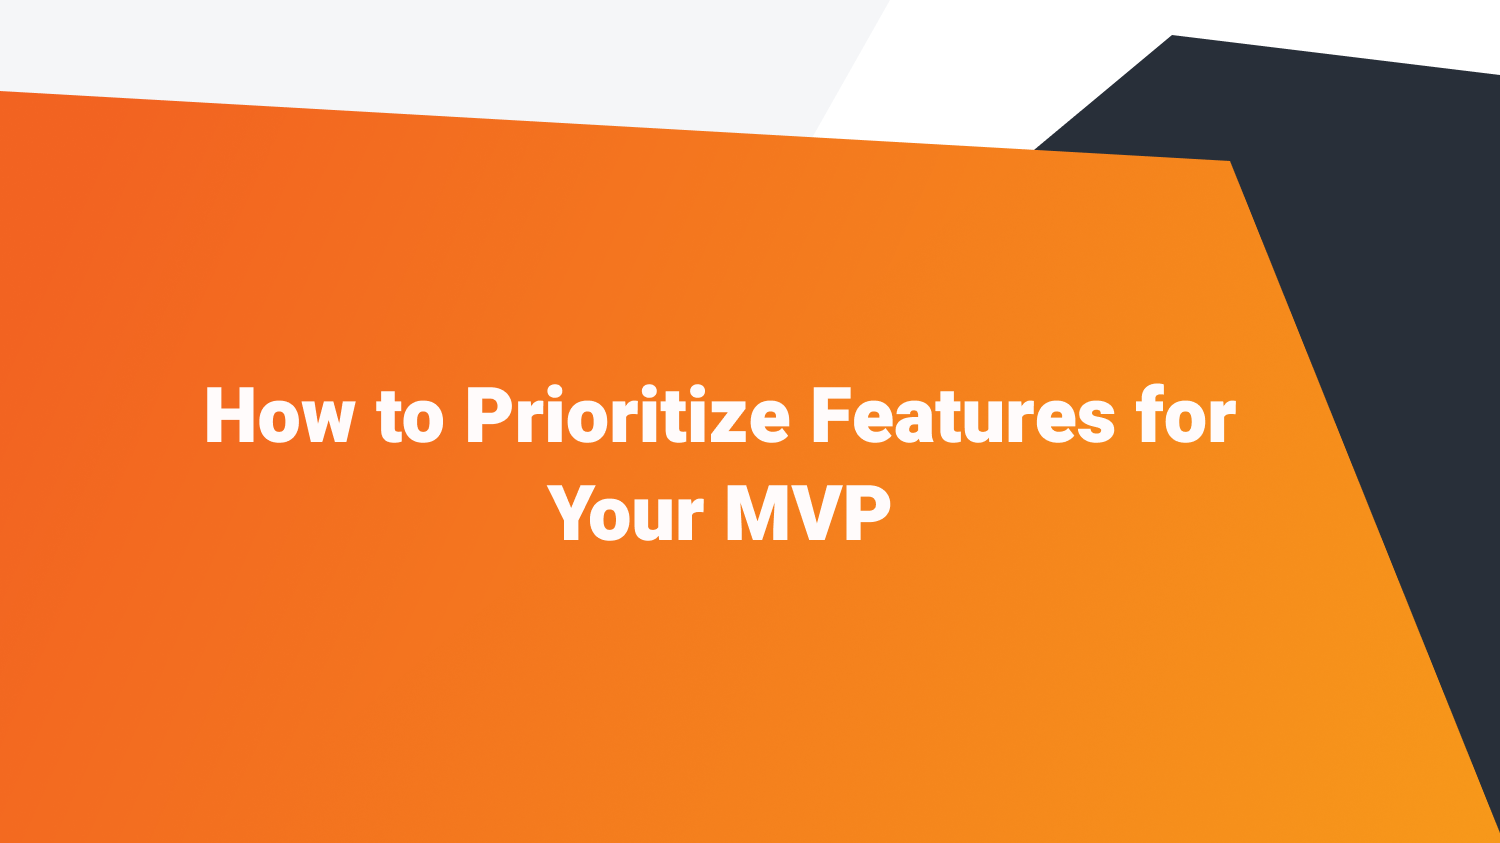 How to Prioritize Features for Your MVP